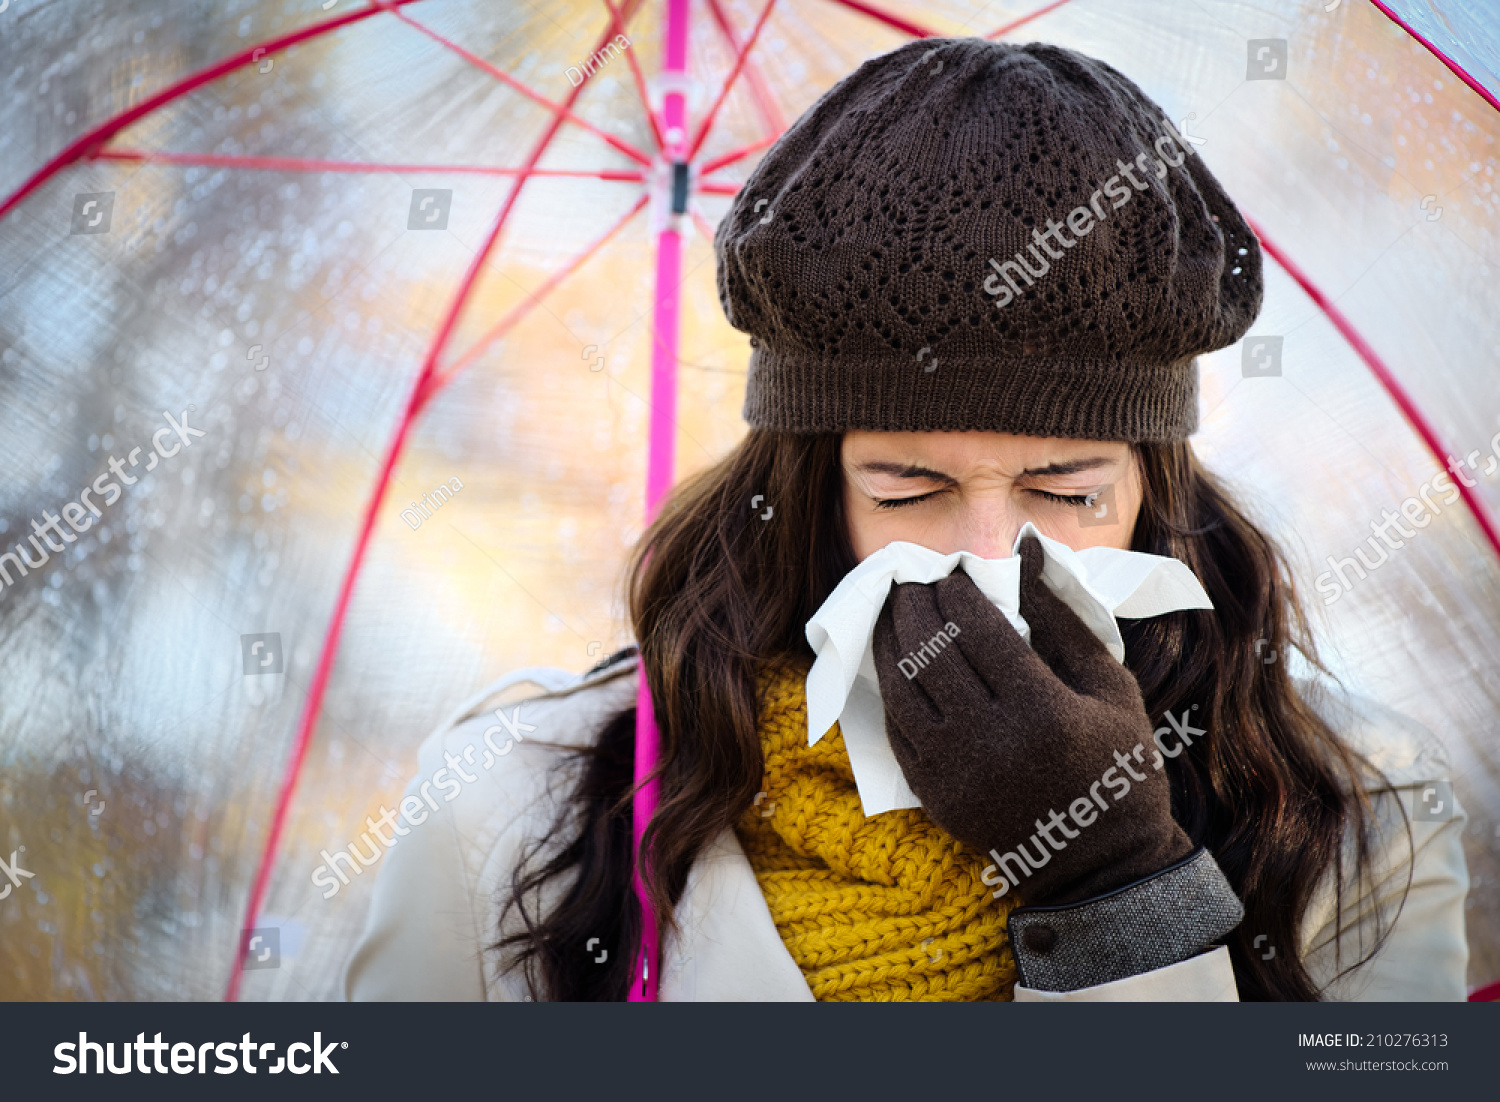 Dating a girl who blows hot and cold